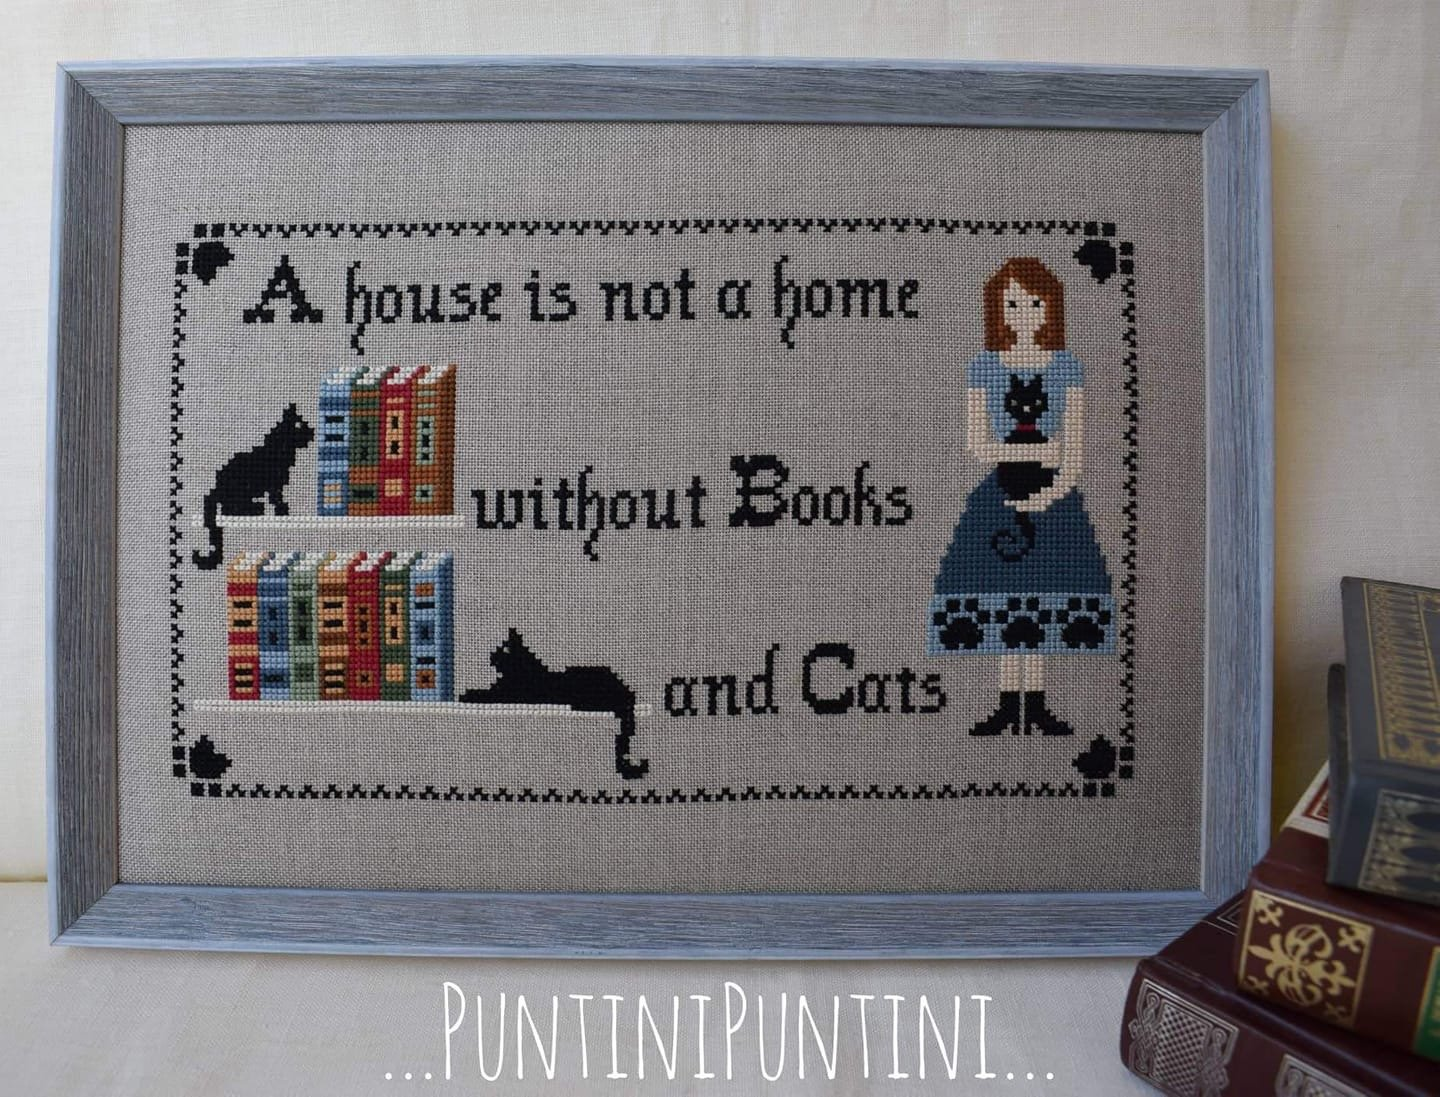 PuntiniPuntini Books and Cats